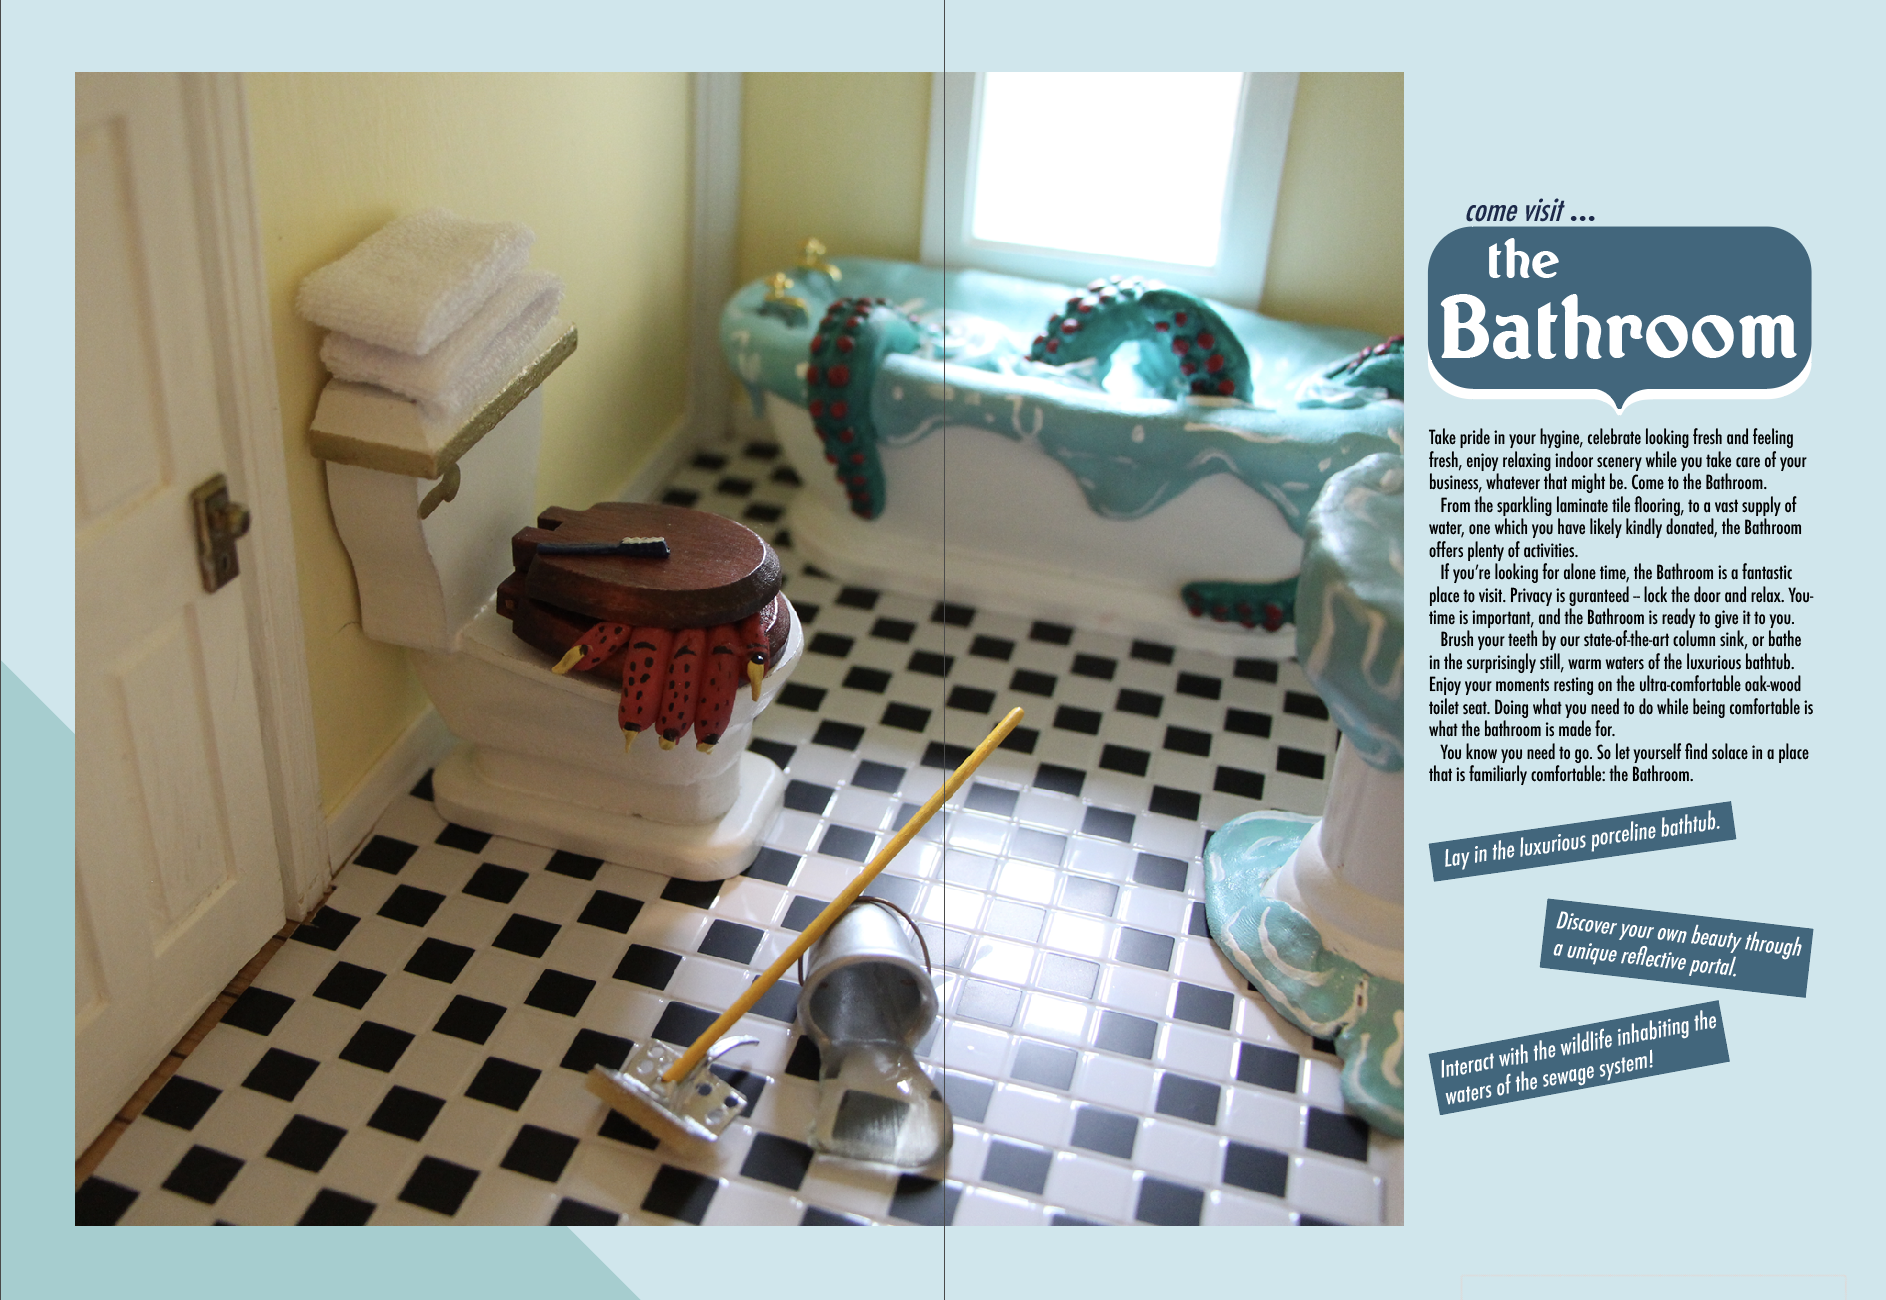 Sample spread from the Bathroom travel guide.